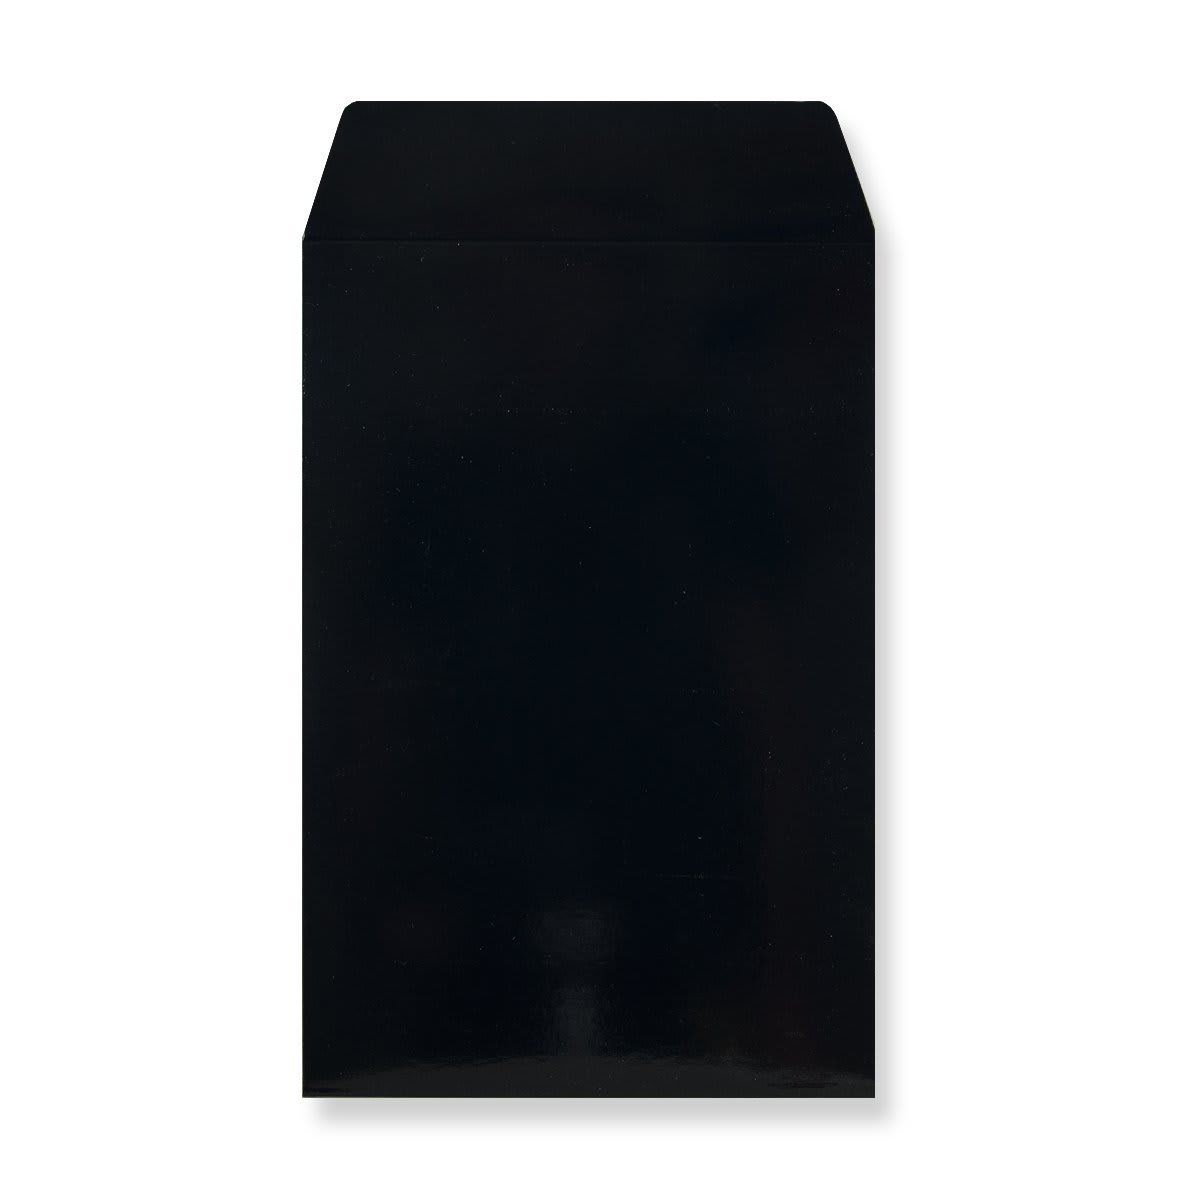 C5 BLACK ALL BOARD ENVELOPES